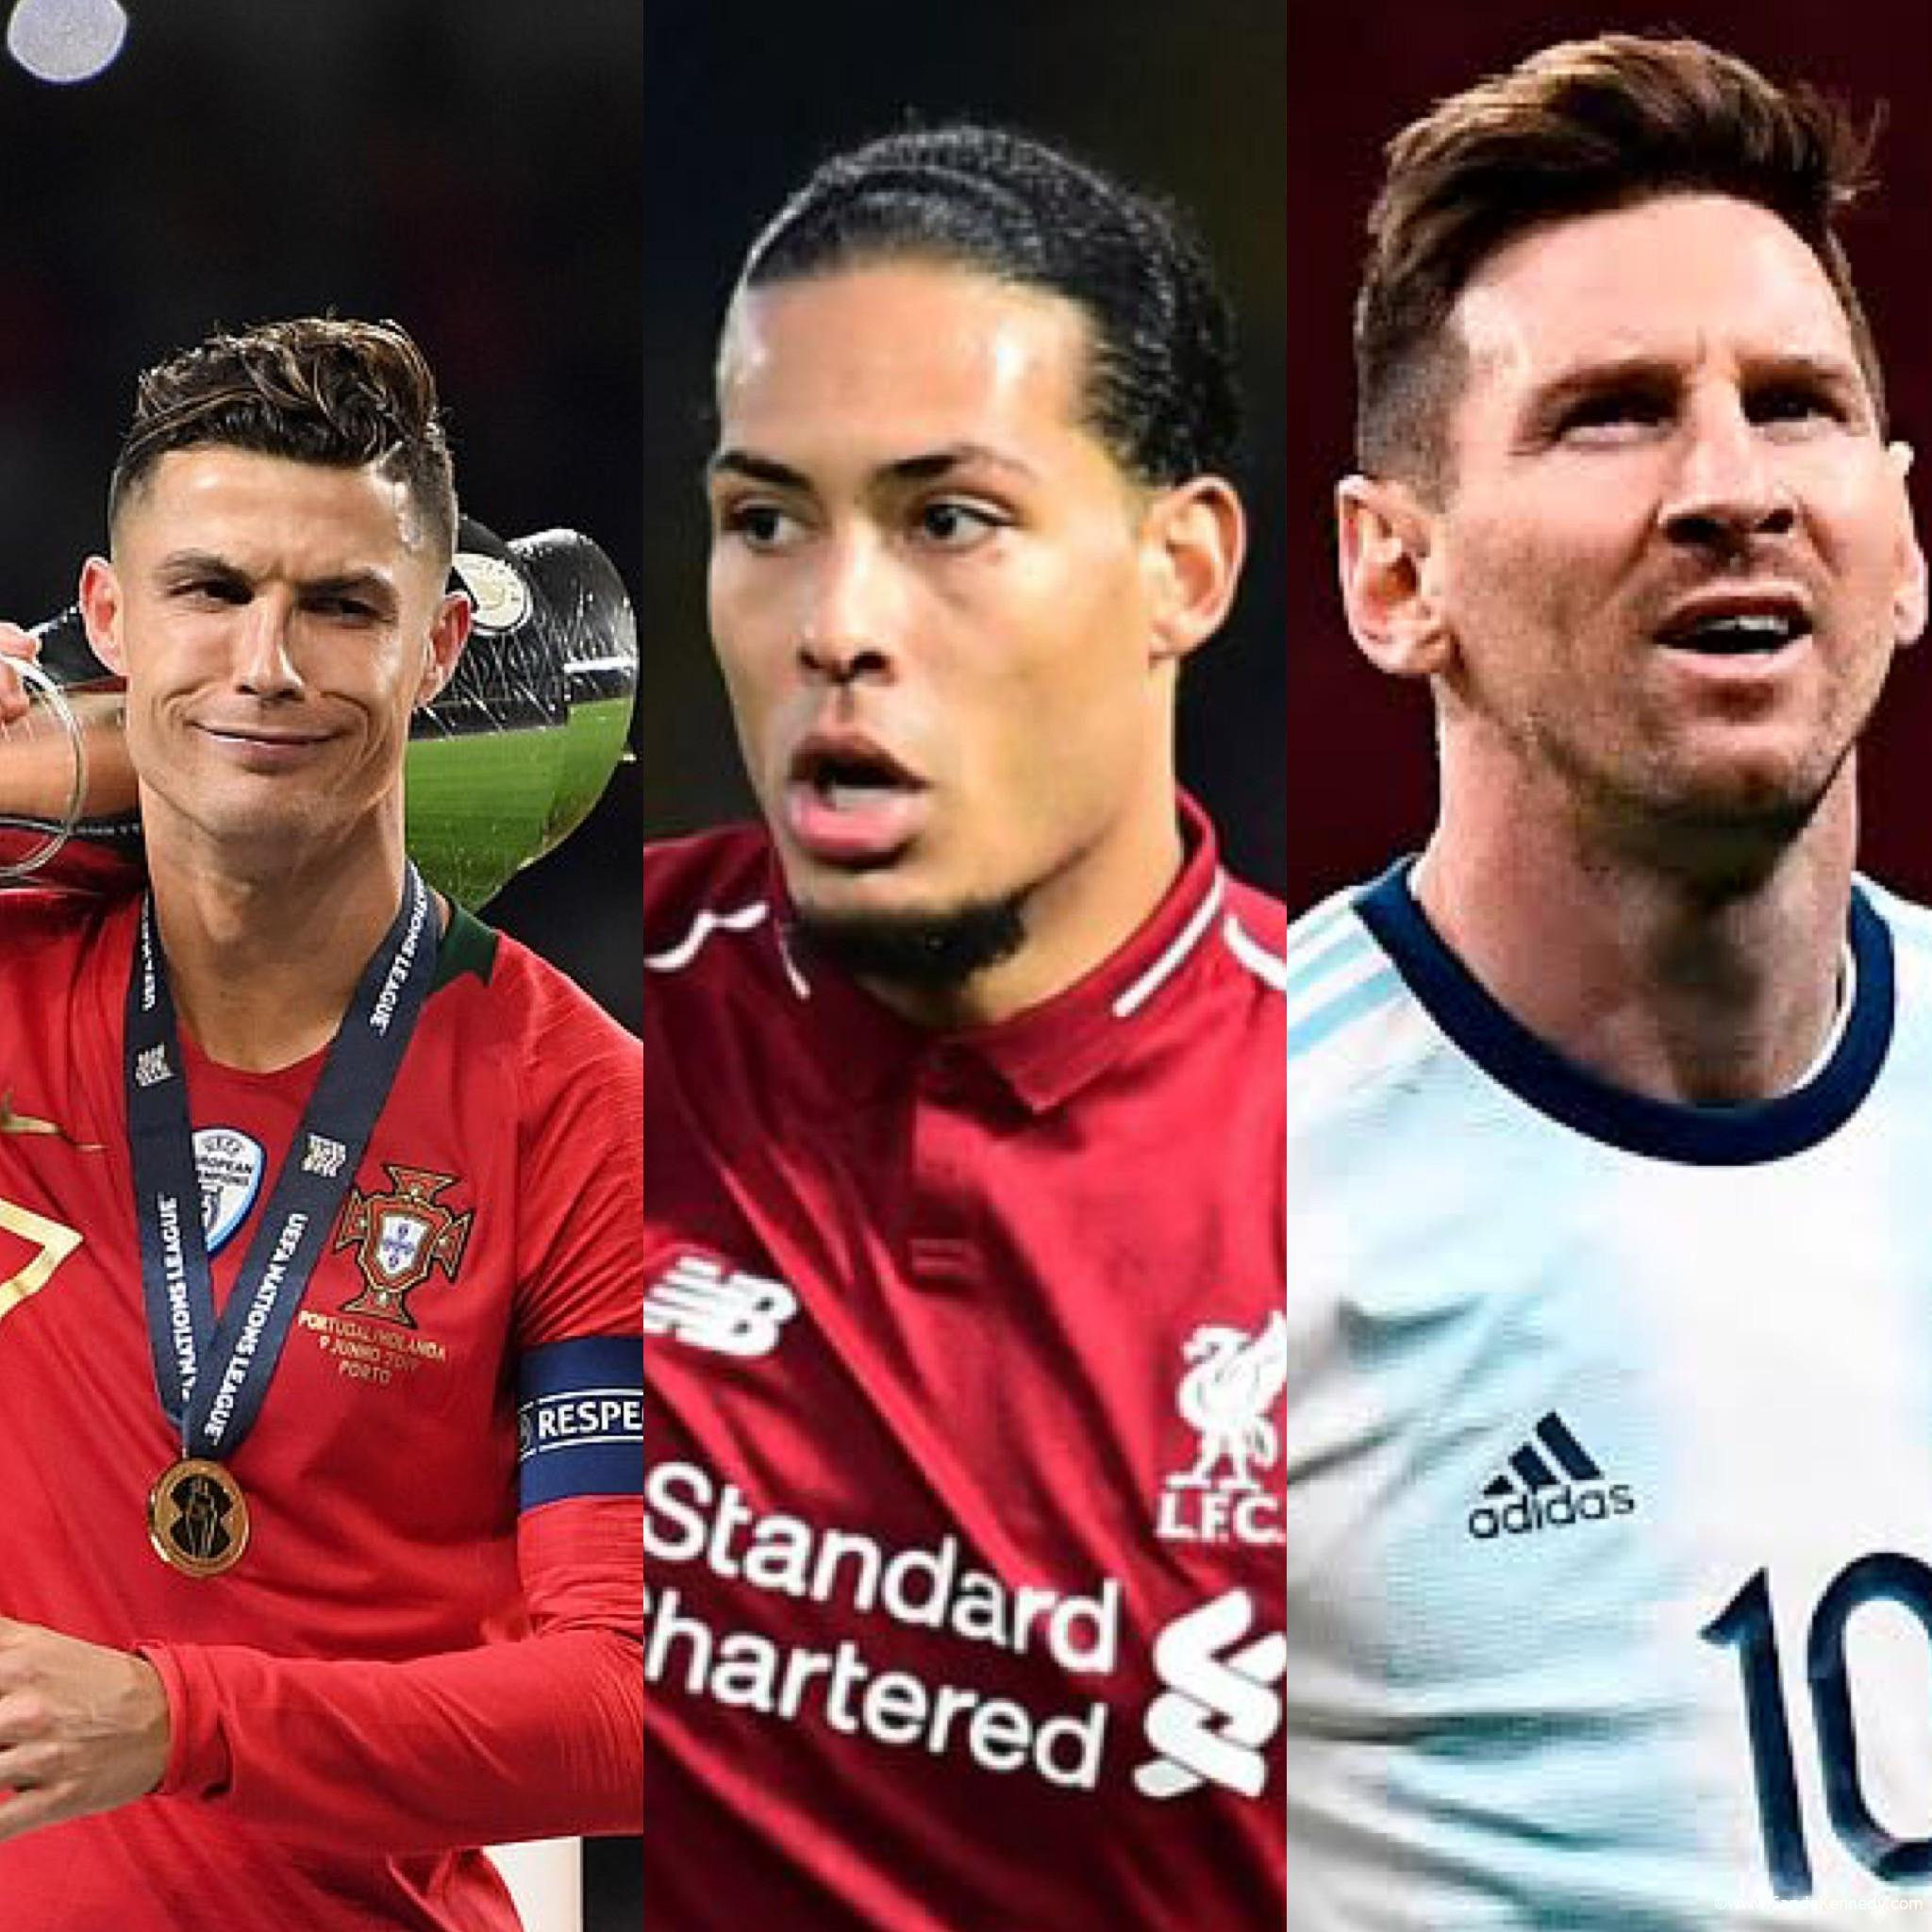 Who do you think will win the Ballon d'or? Lionel Messi, Cristiano Ronaldo or Van Dijk?